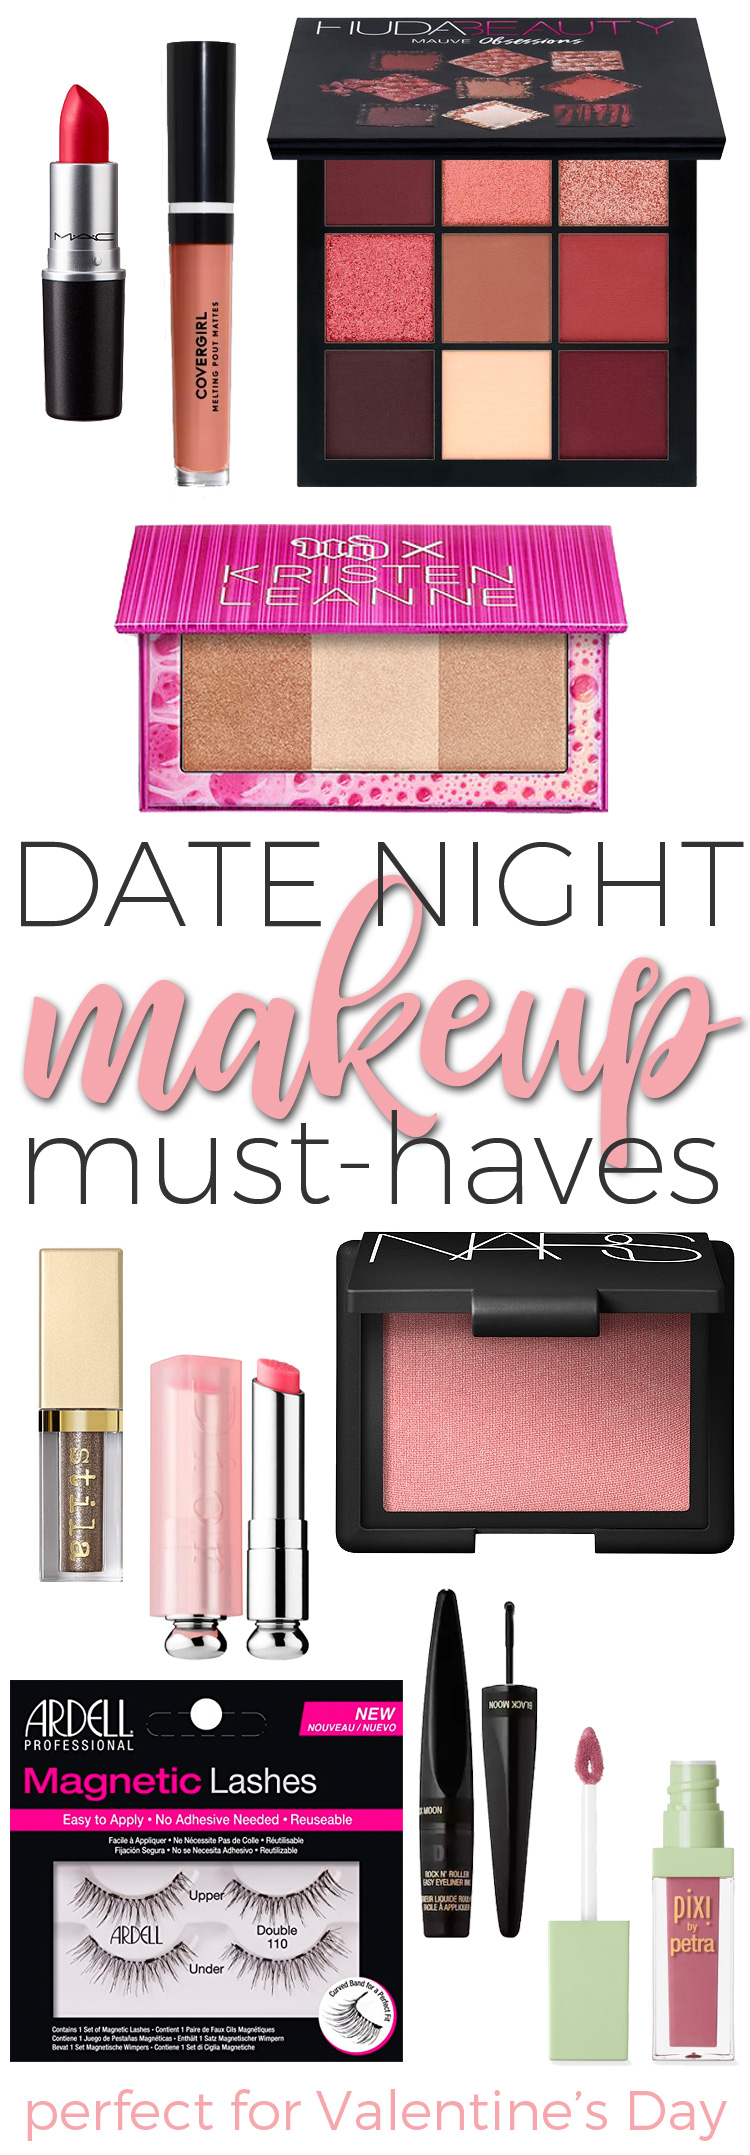 Date Night Makeup Must-Haves